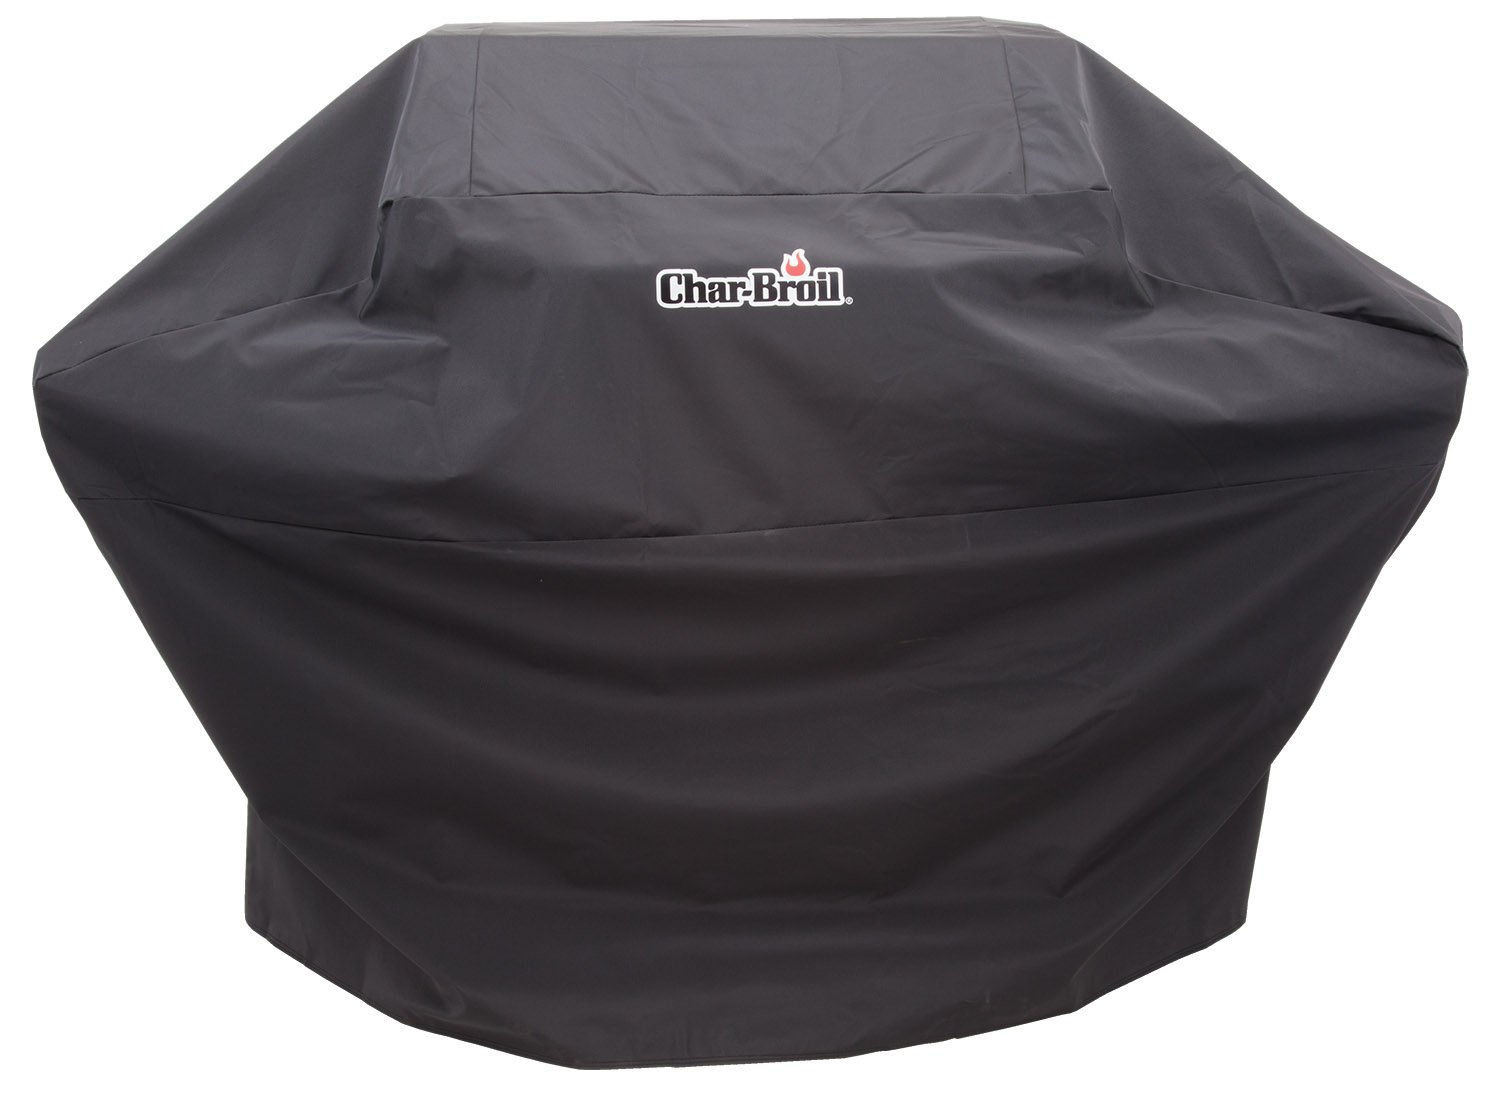 Char-Broil 3-4 Burner Performance Grill Cover by Char-Broil